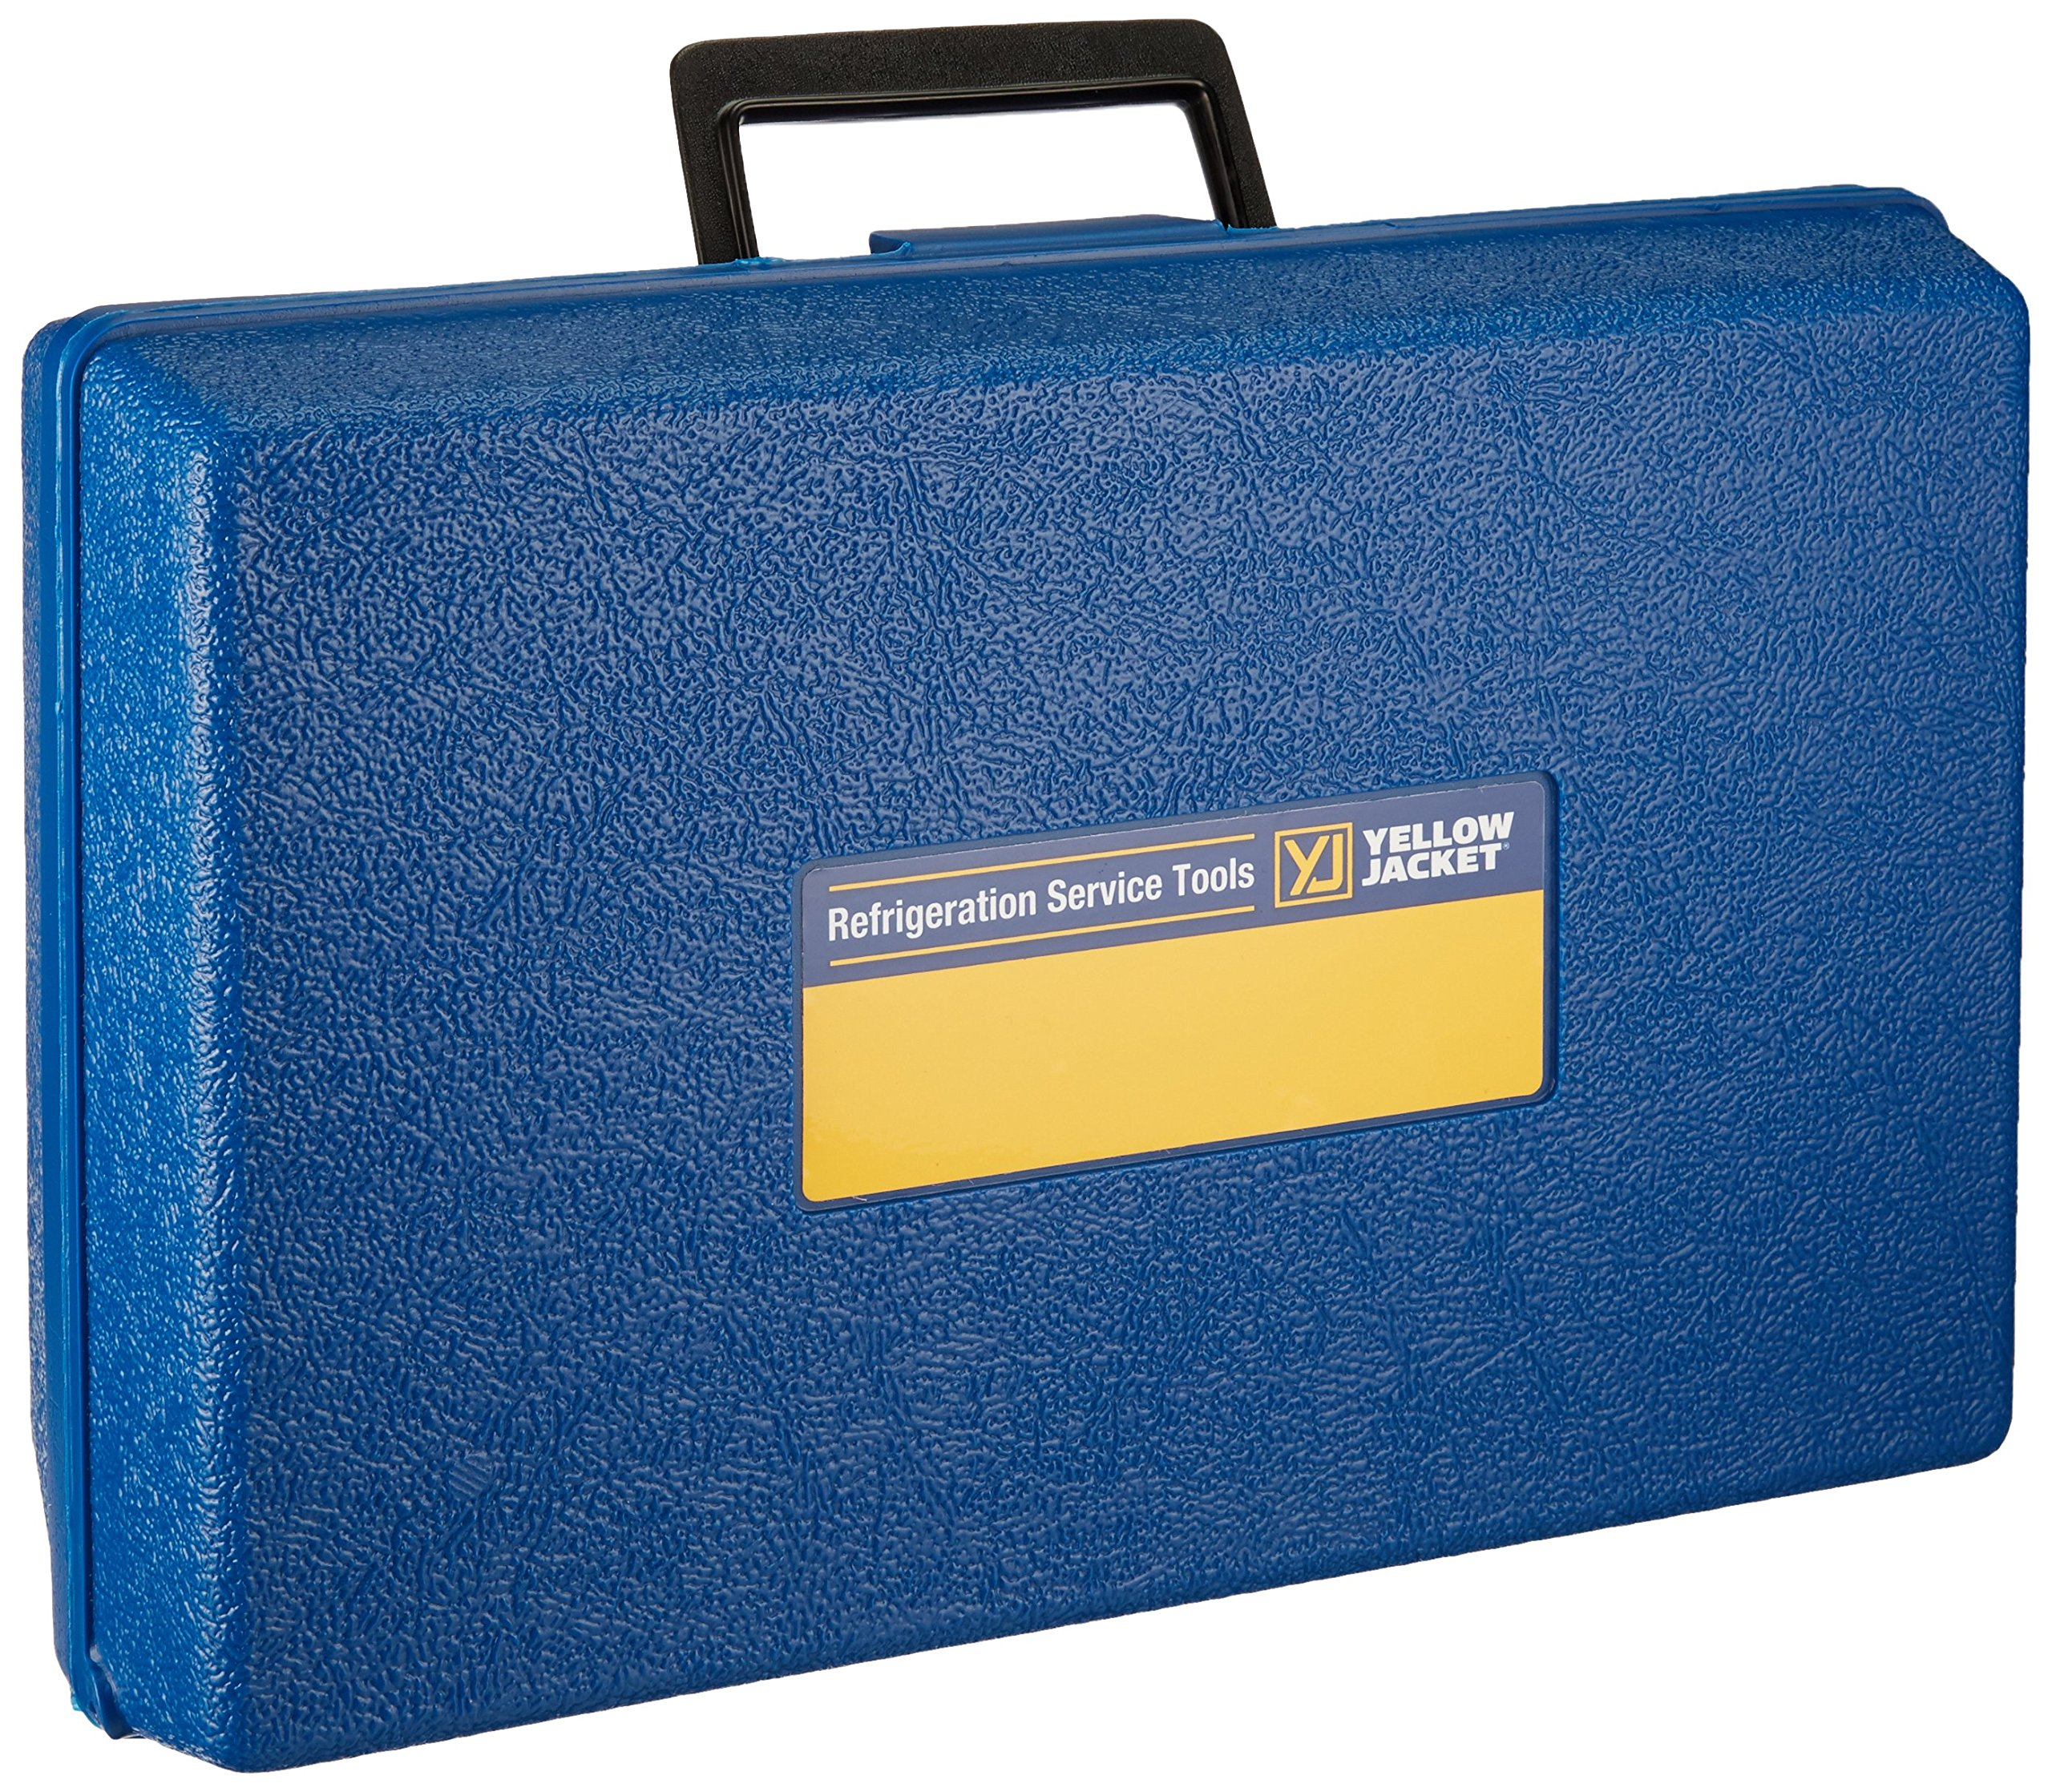 Yellow Jacket 40261 Series 41 Manifold Carrying Case, 13-1/2'' x 10'' x 3-1/2'', Blue